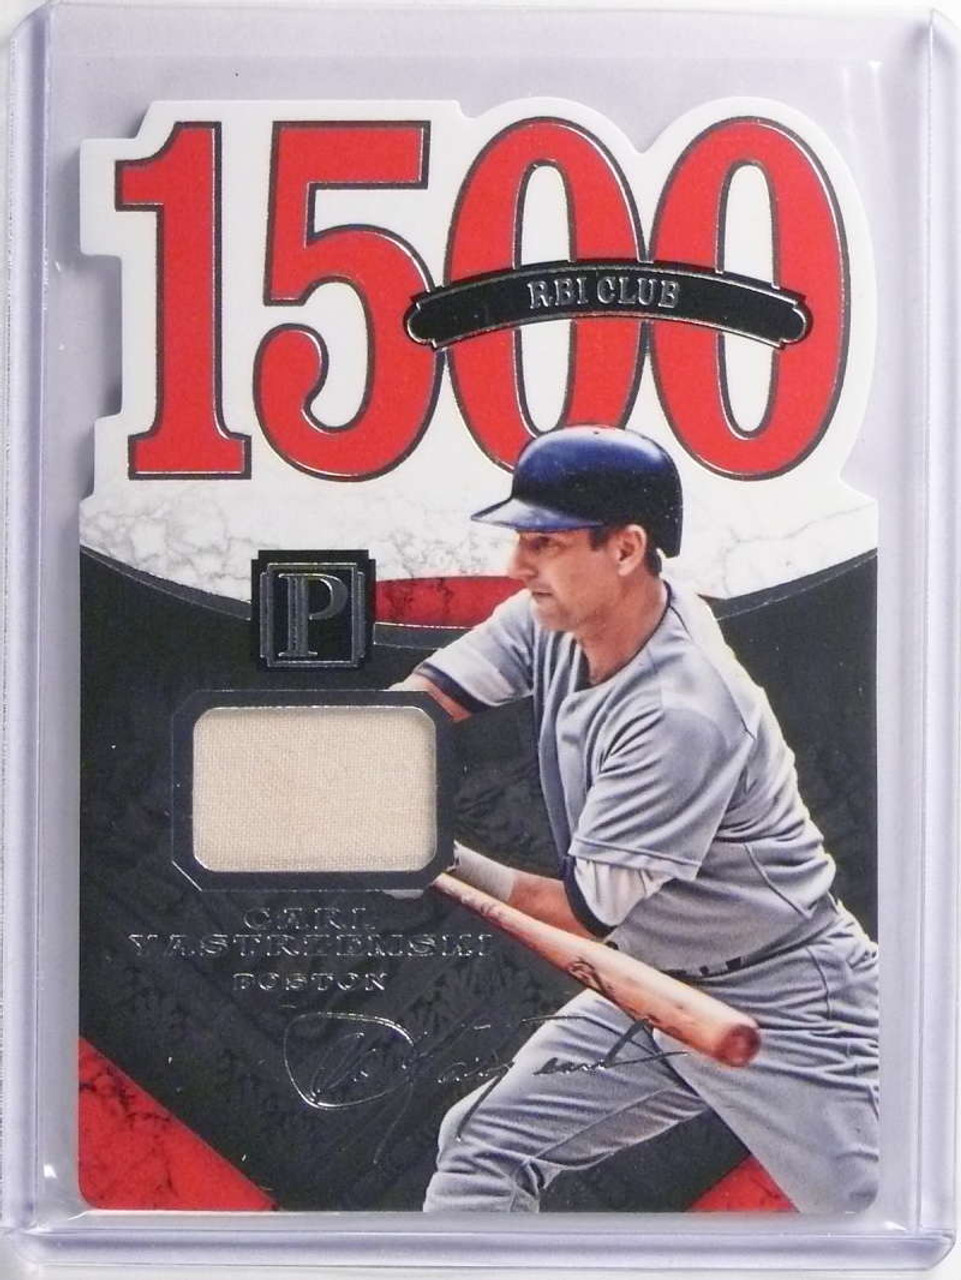 new arrival aa7c1 60556 SOLD 17348 2016 Panini Pantheon 1500 RBI Club Carl Yastrzemski Jersey  #D190/199 #79 *70309